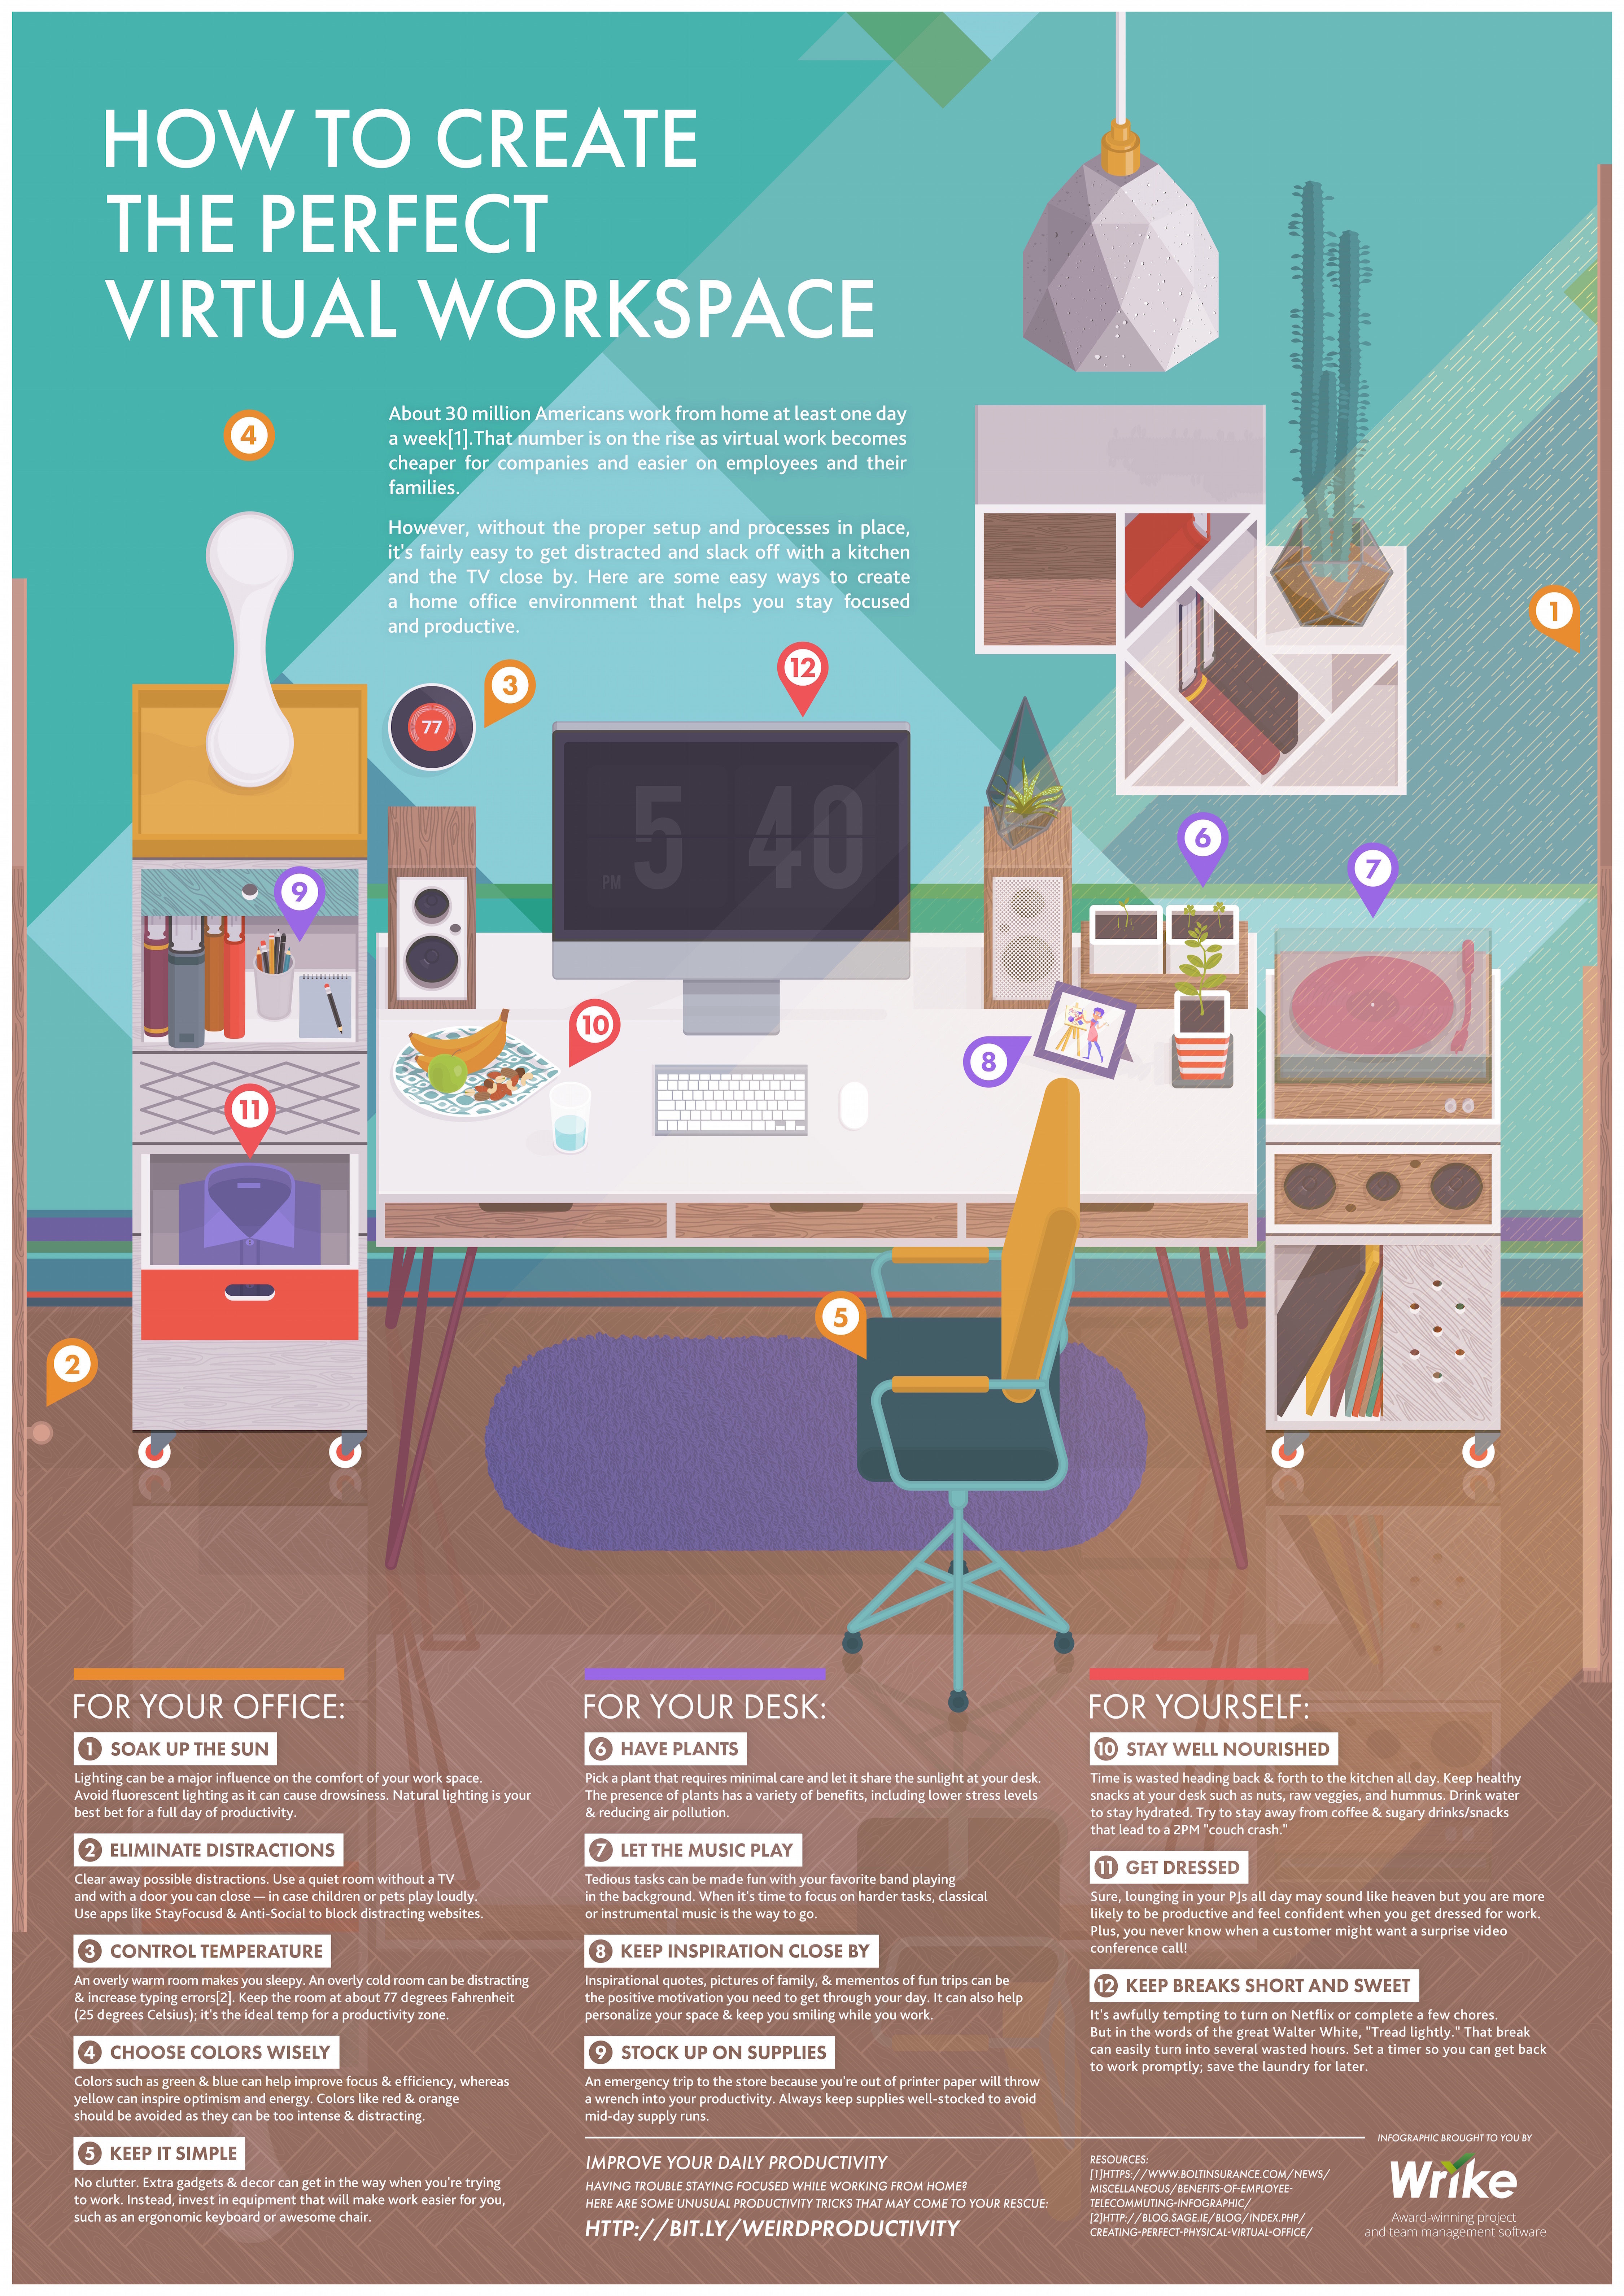 how to create your perfect remote work environment infographic the poster version